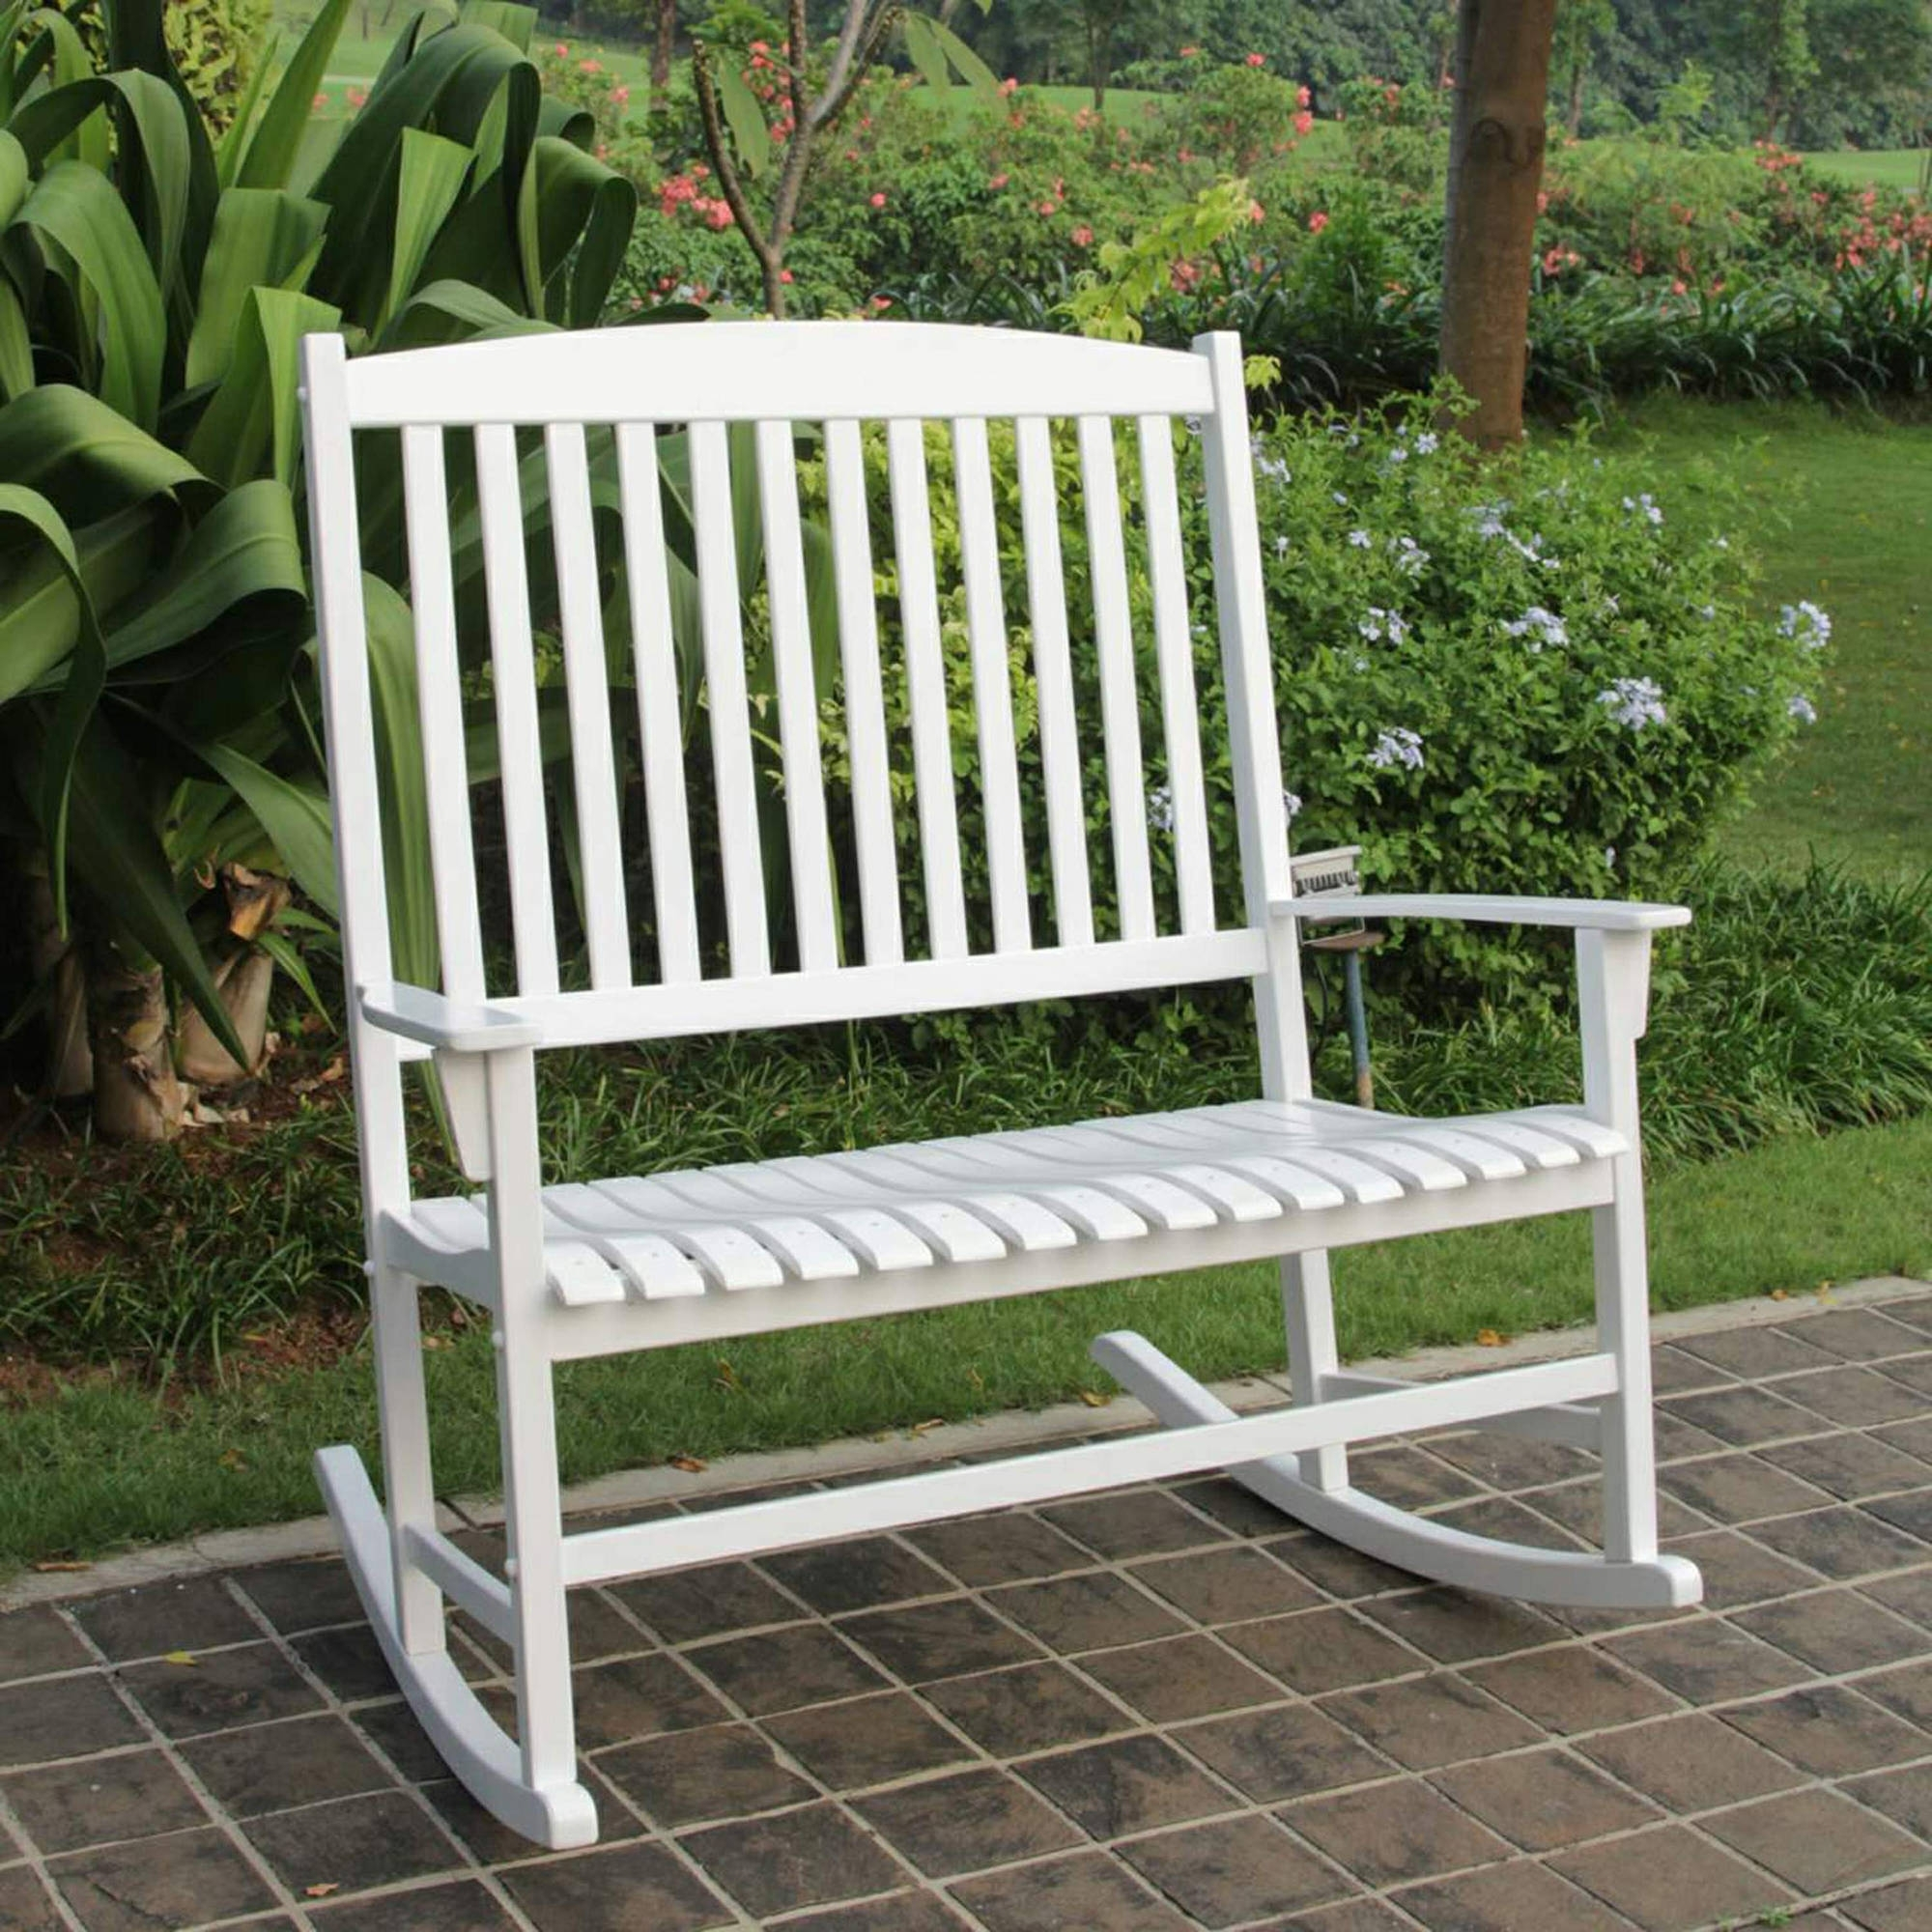 Fashionable Patio Loveseat White Hardwood Outdoor Rocking Chair For 2 In Outdoor Rocking Chairs (View 5 of 20)